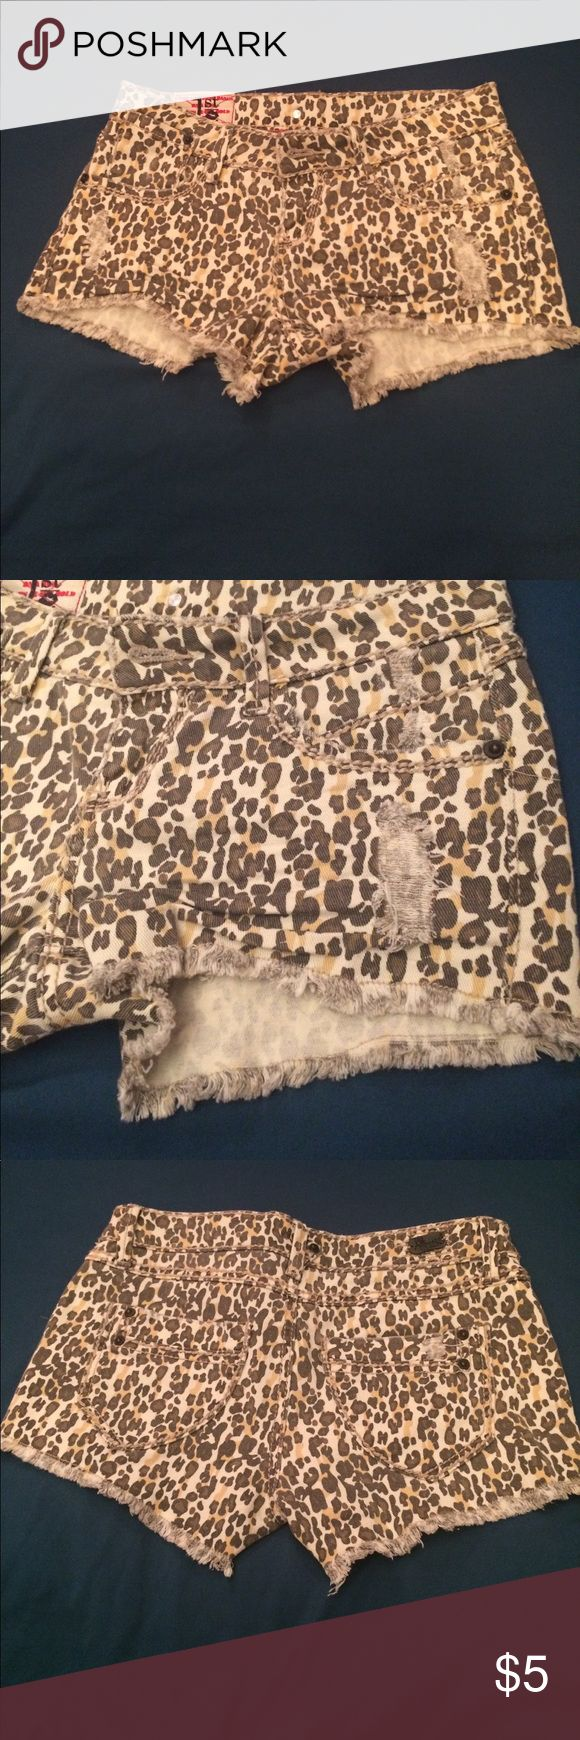 Cheetah Shorts! A pair of cheetah shorts! Great condition! Frayed style at bottom. Real pockets on front and back. Coming from a smoke free home! Same or next day shipping! 1st Kiss Shorts